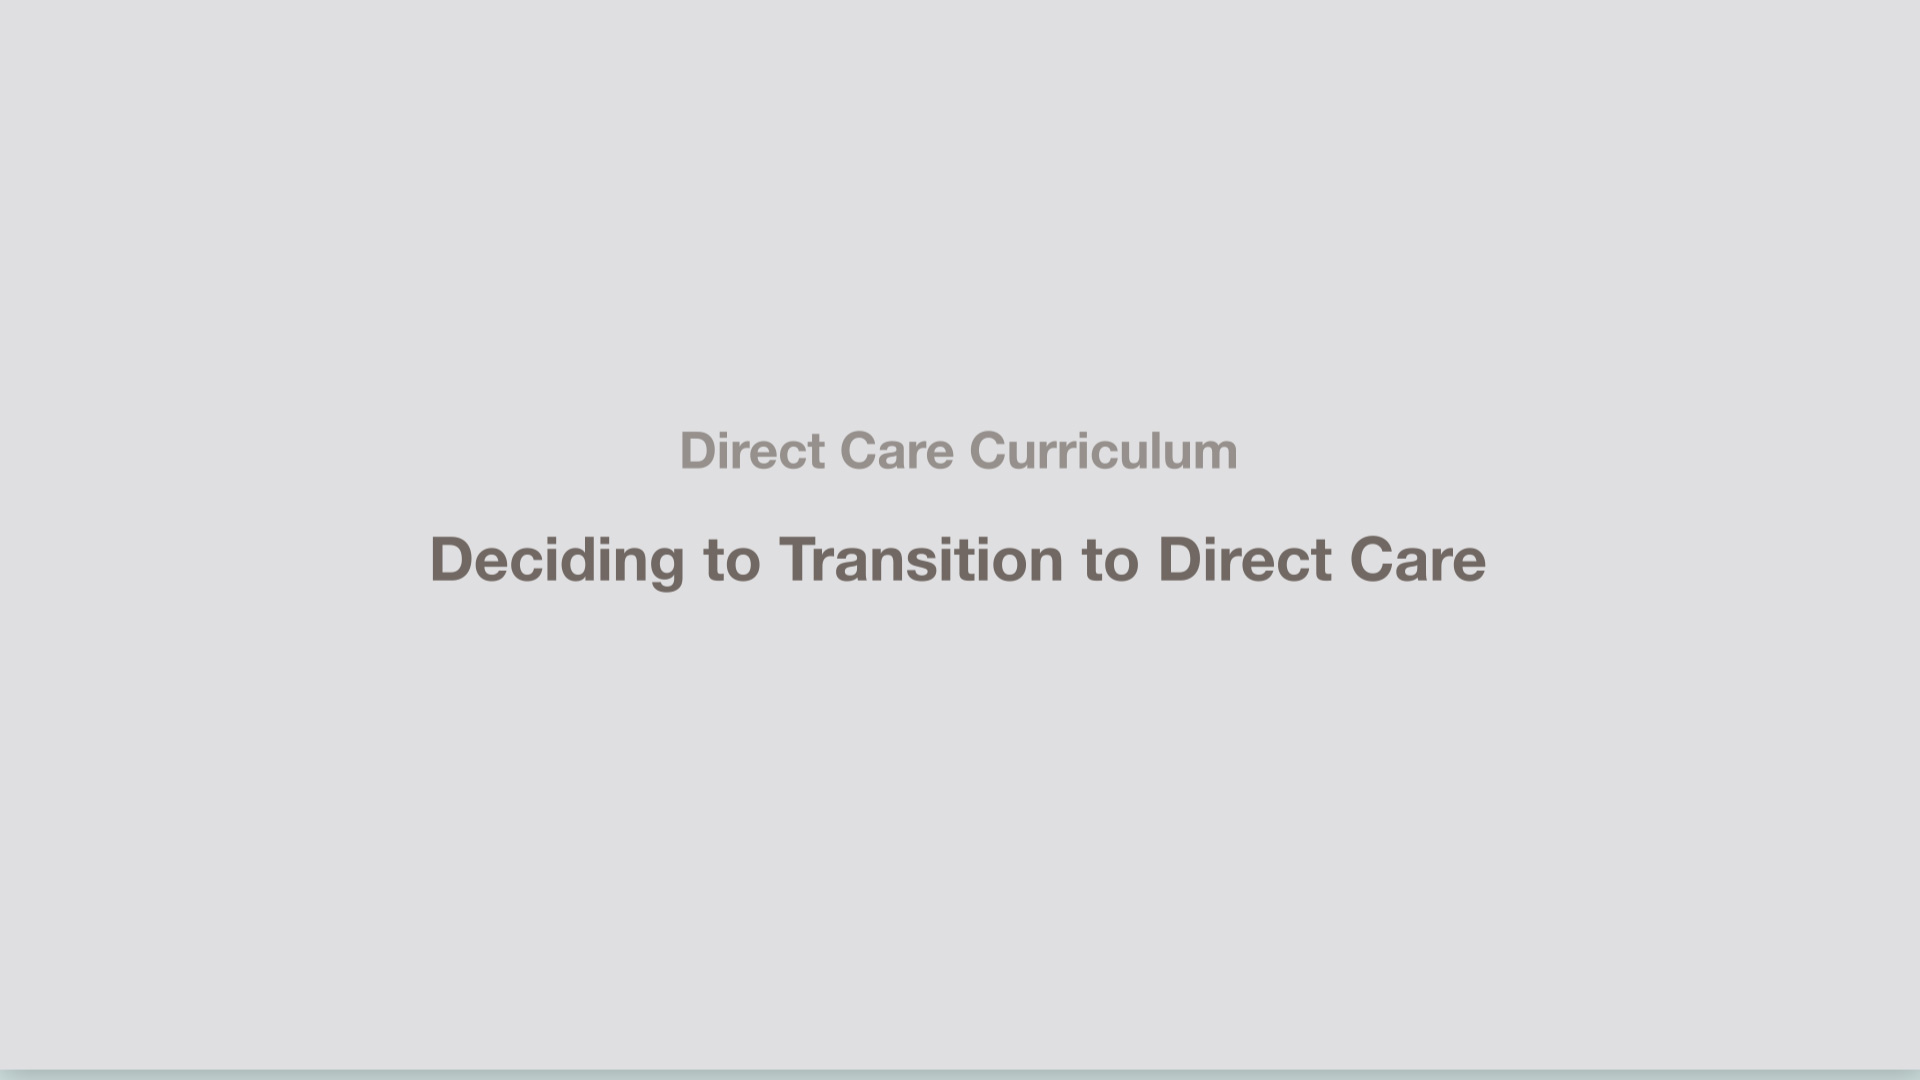 Deciding to Transition to Direct Care